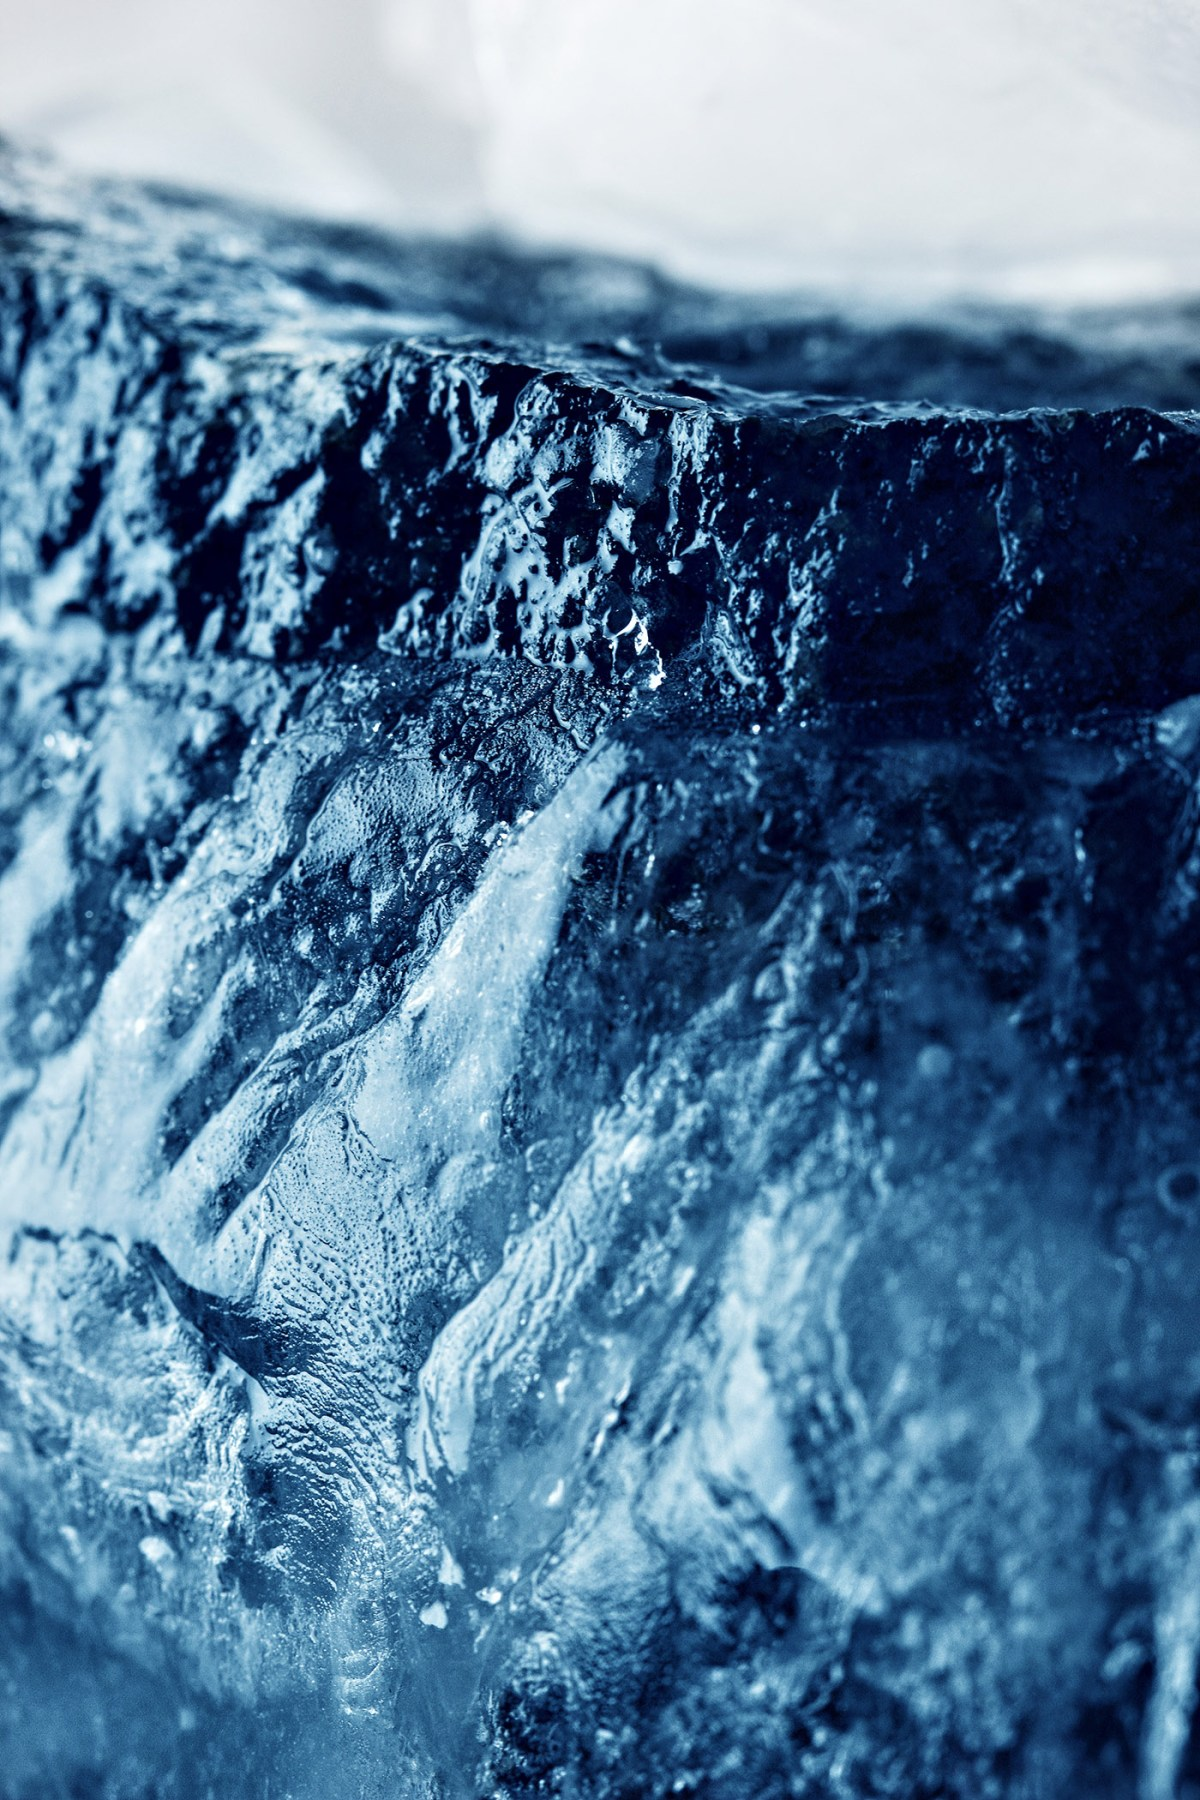 Frosted stone.ice texture.Old ice closeup shot.nature textures